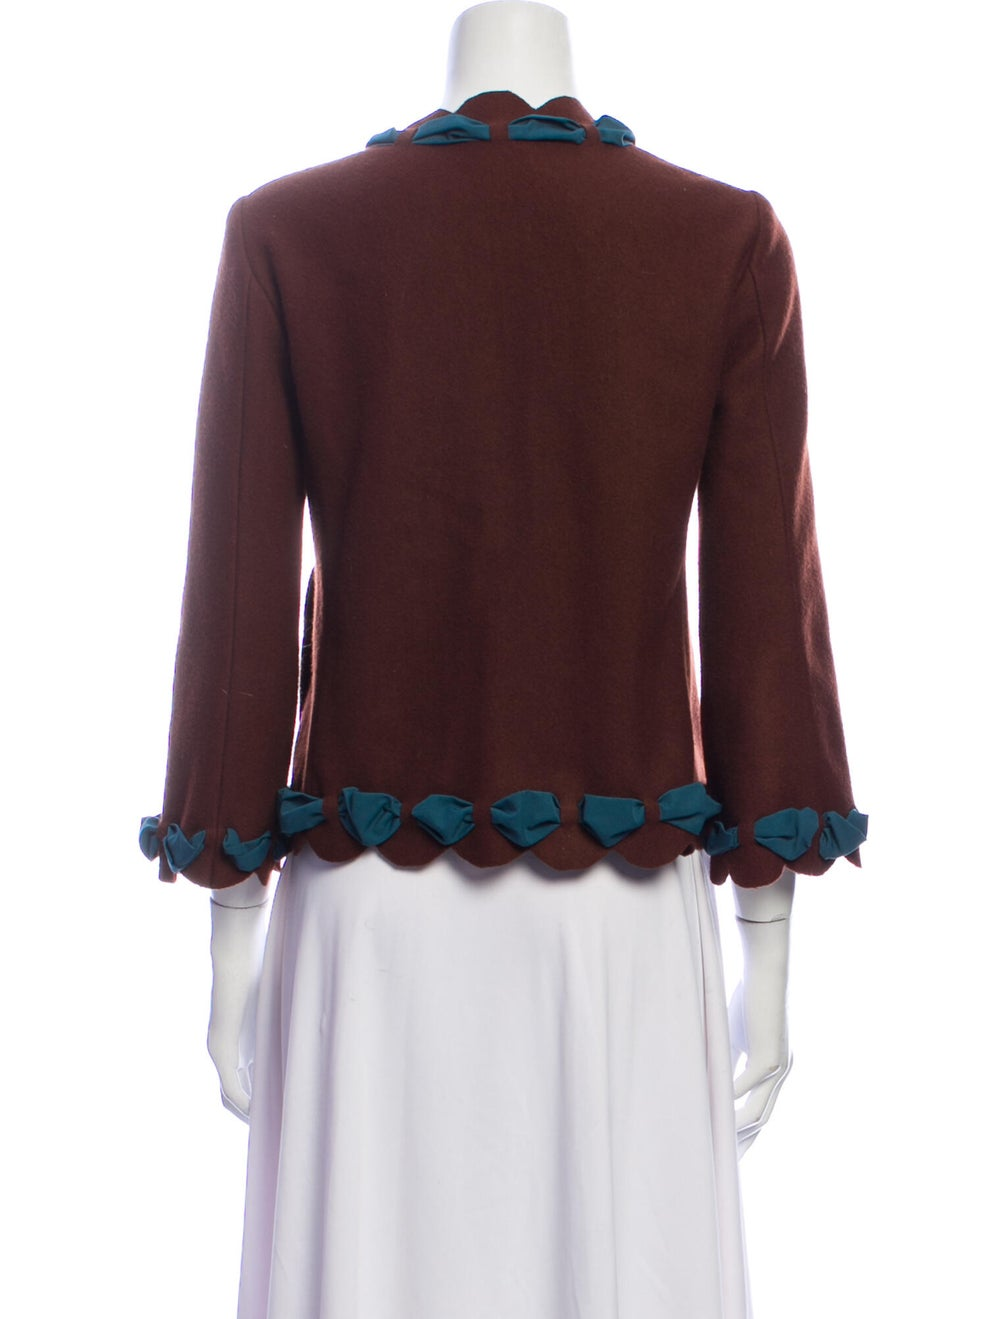 Moschino Cheap and Chic Wool Evening Jacket Wool - image 3